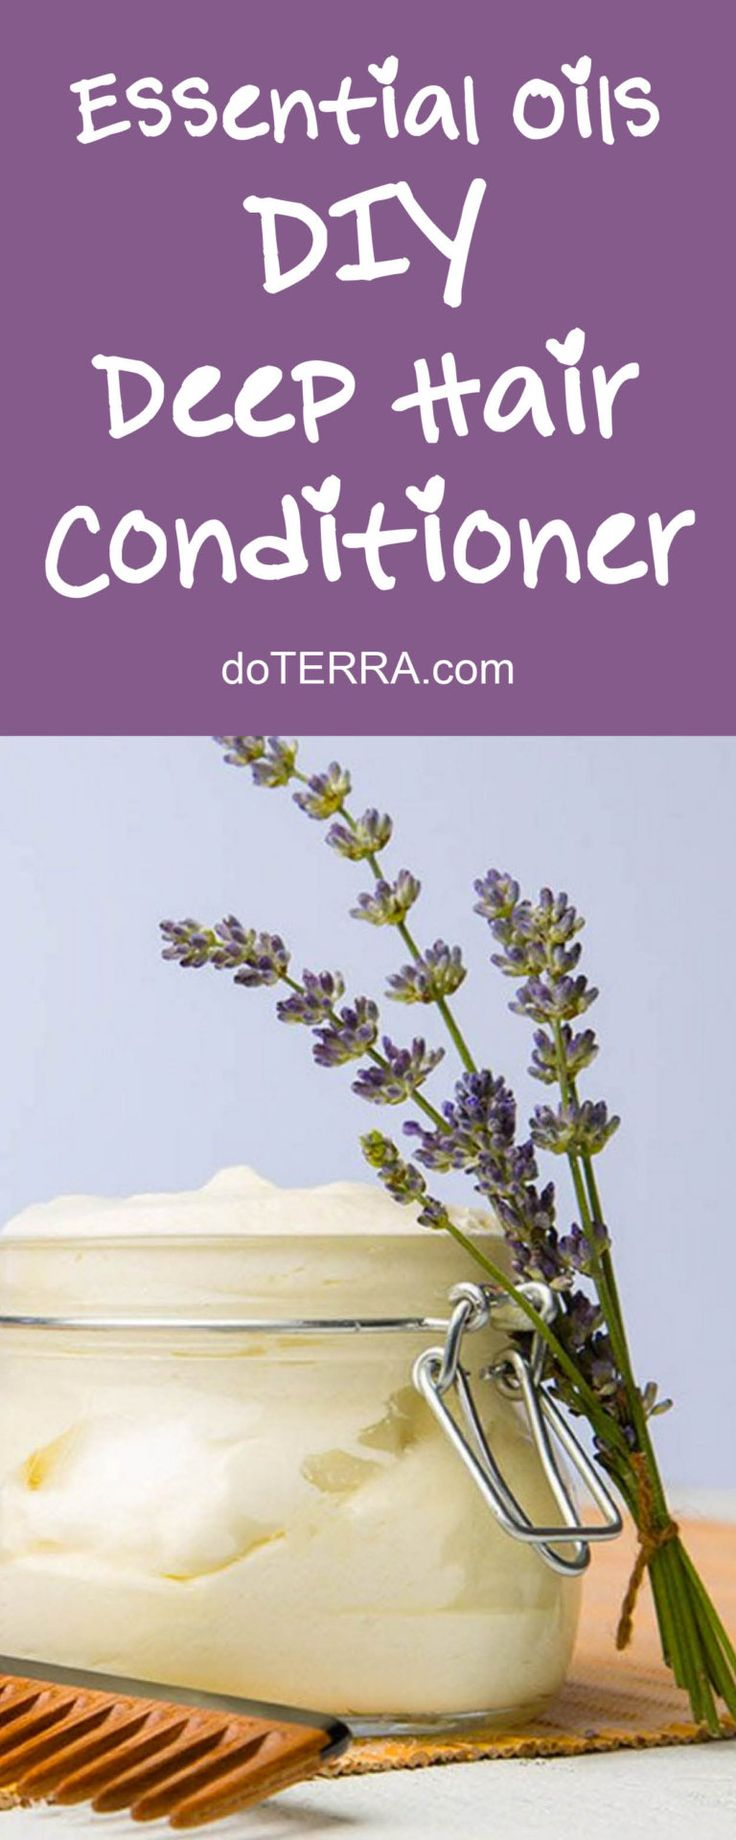 doTERRA Essential Oil DIY Deep Hair Conditioner Recipe DIY Beauty doTERRA Essential Oil Recipes